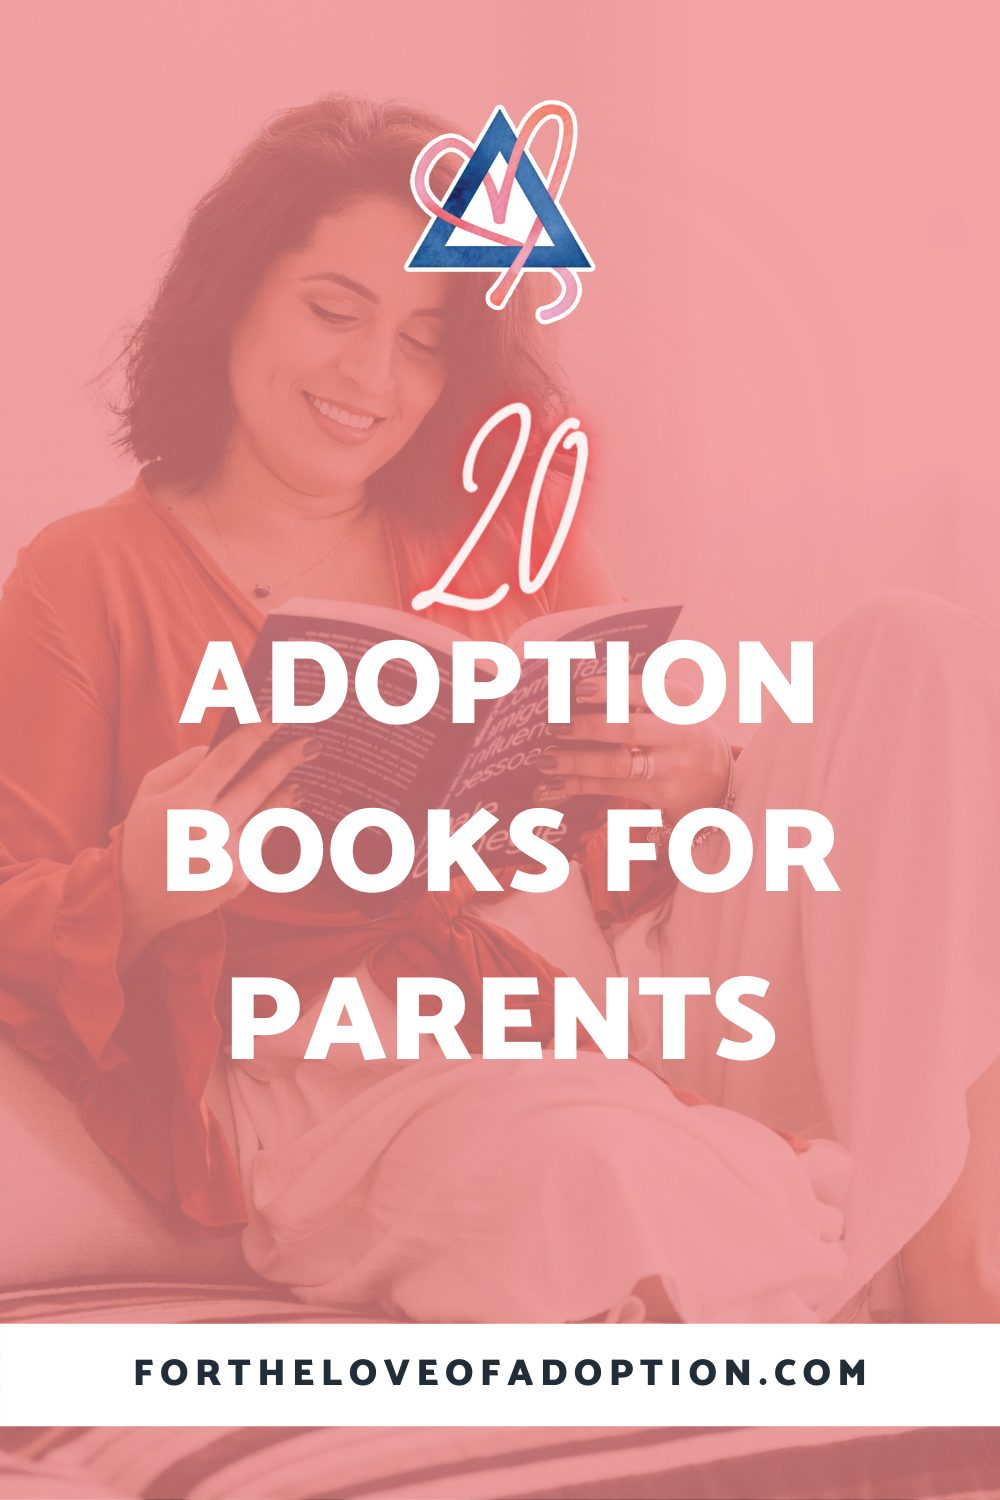 20 Adoption Books for Parents